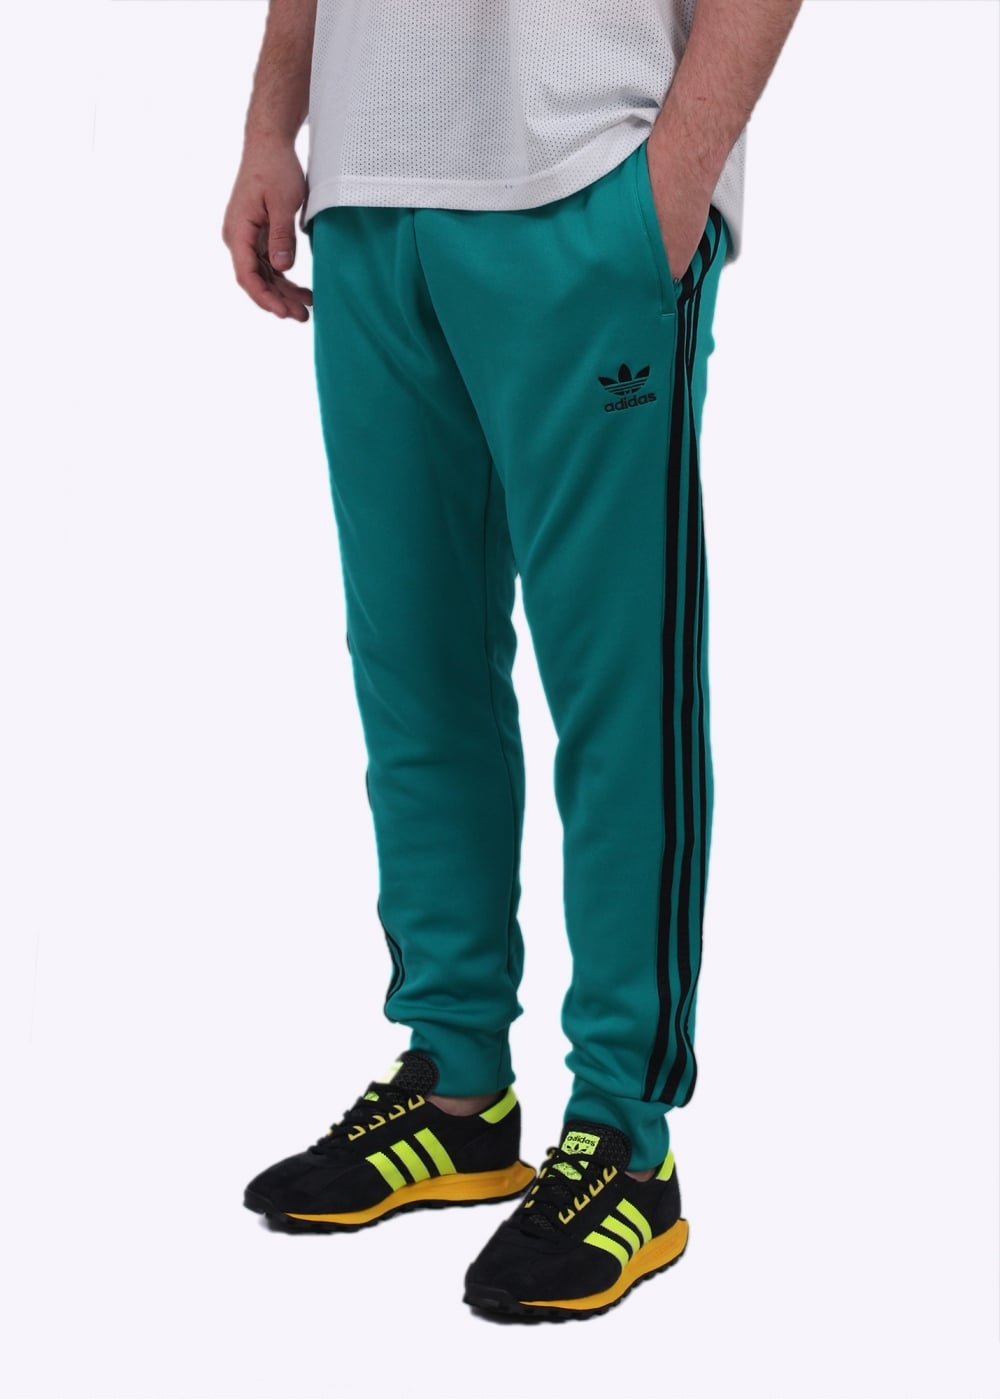 827ef3ea103a adidas Originals Apparel SST Cuffed Track Pant - Green - Jogging ...